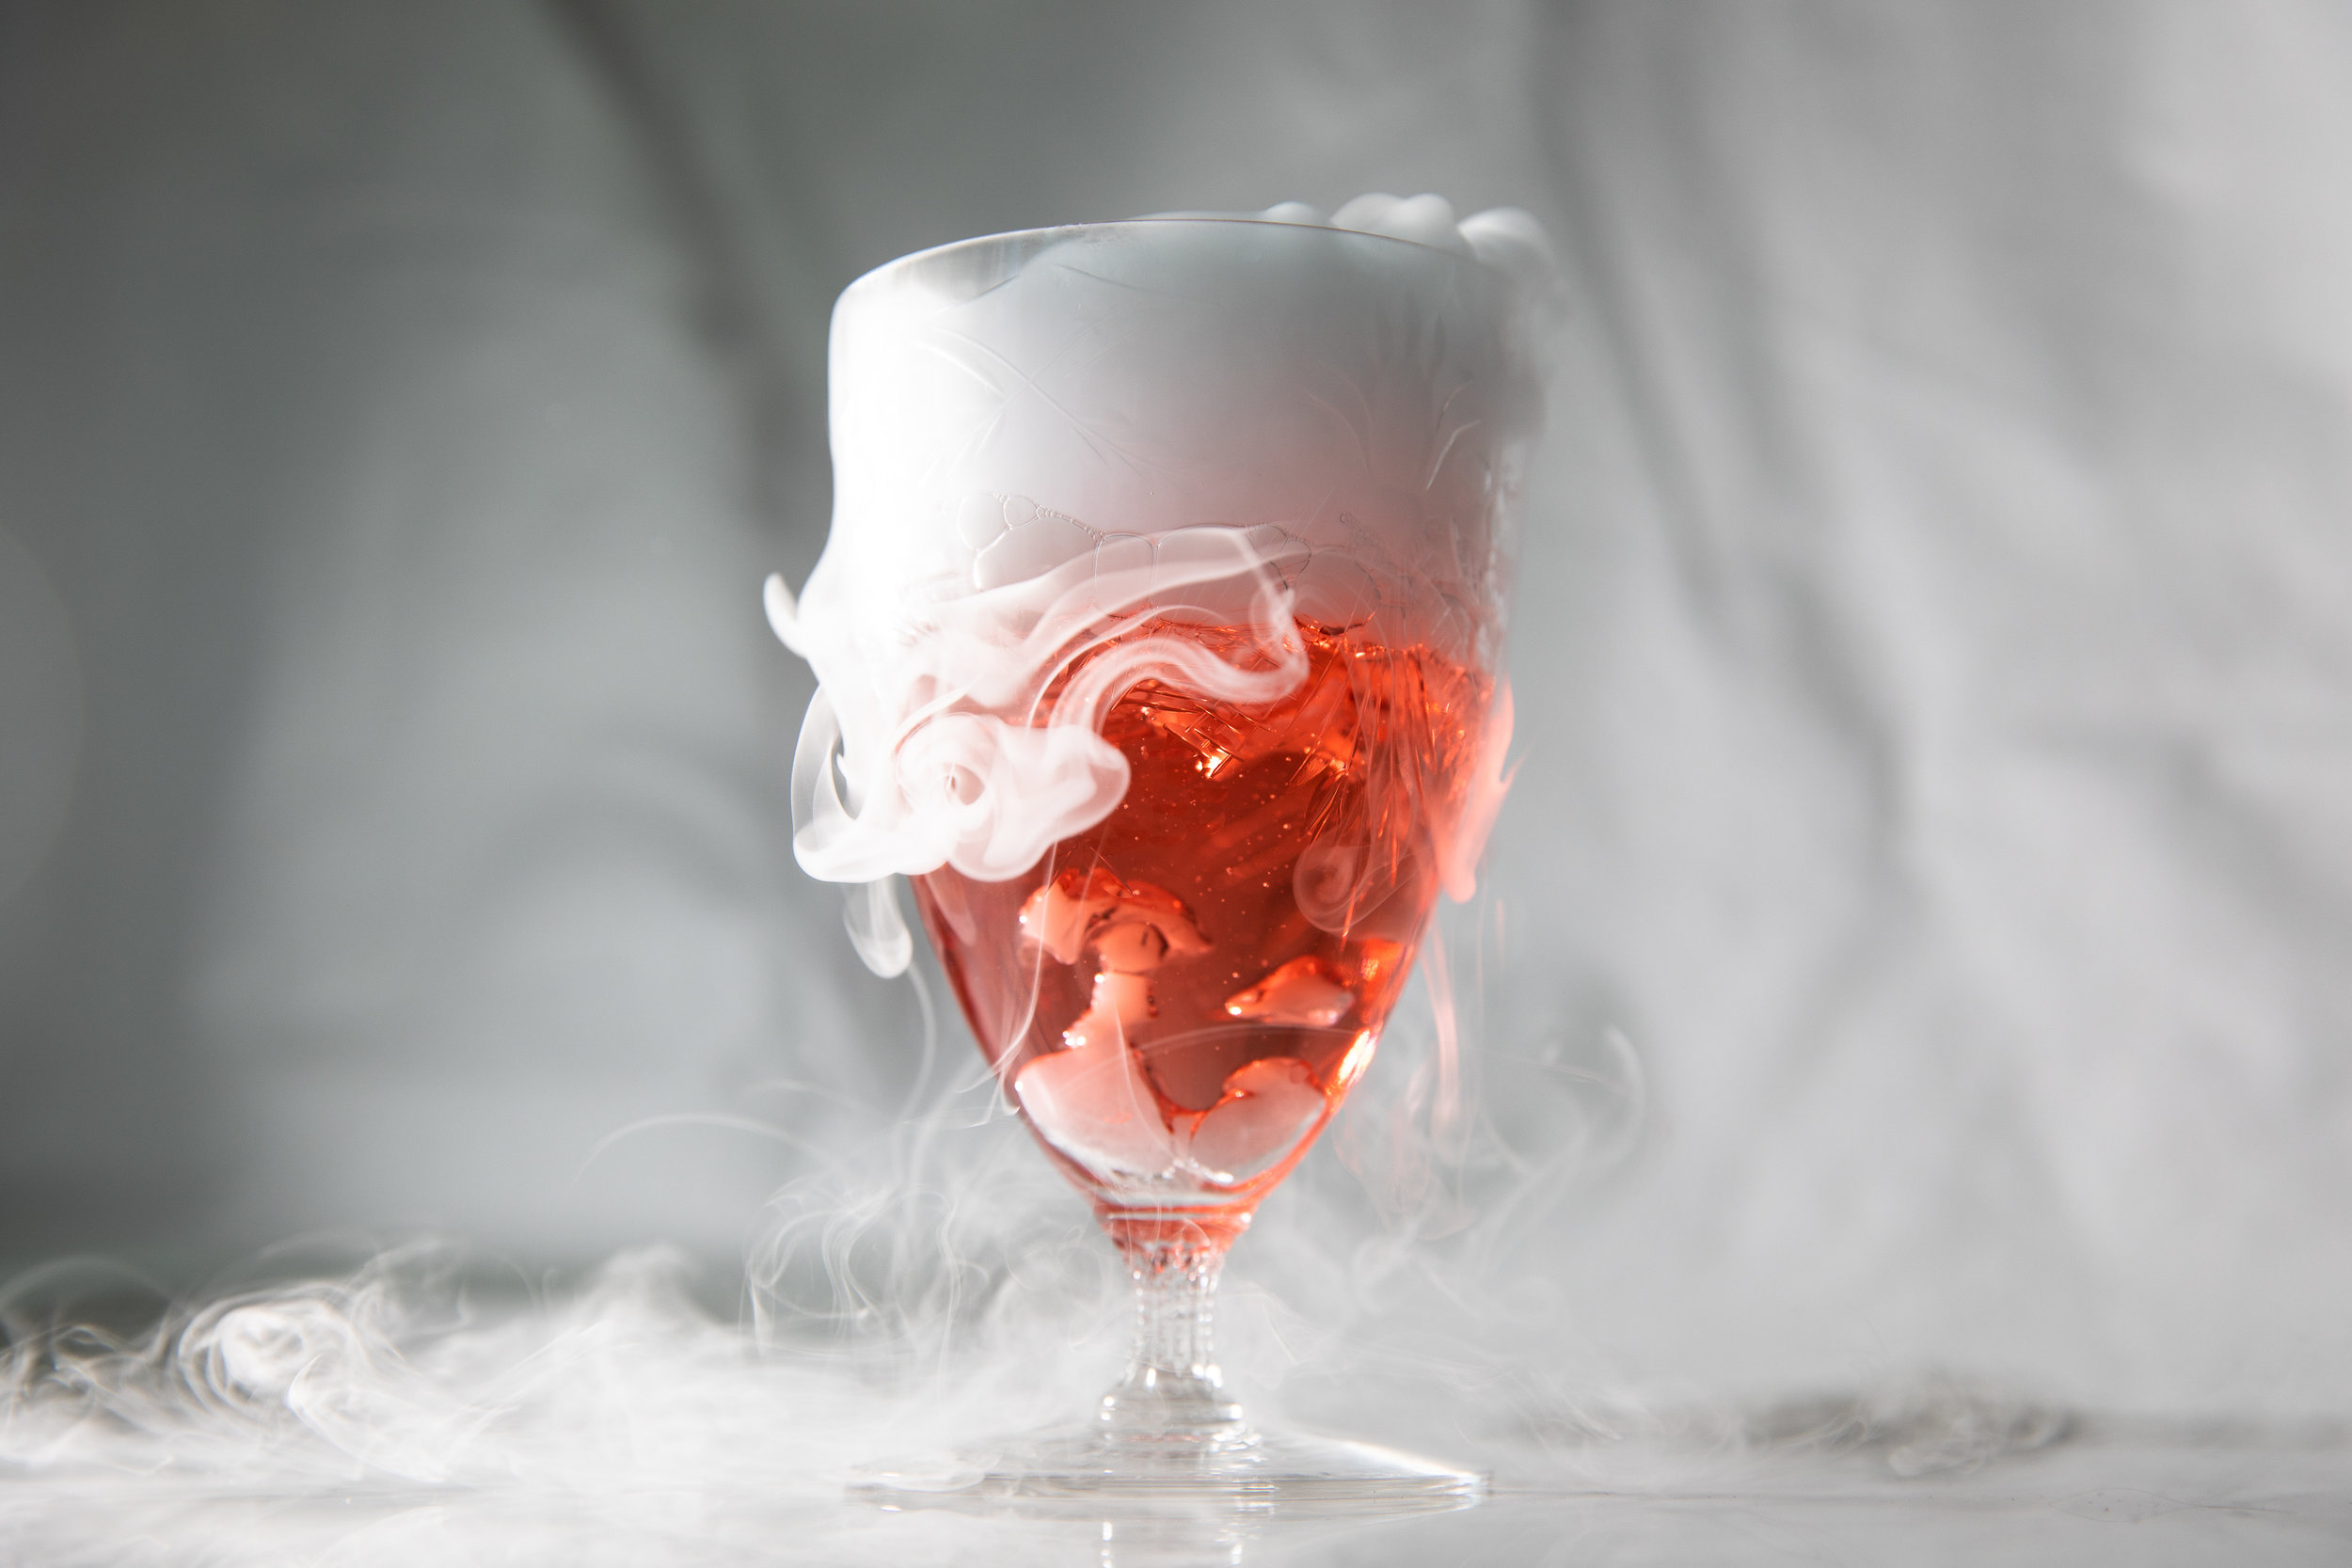 Tips for photographing dry ice